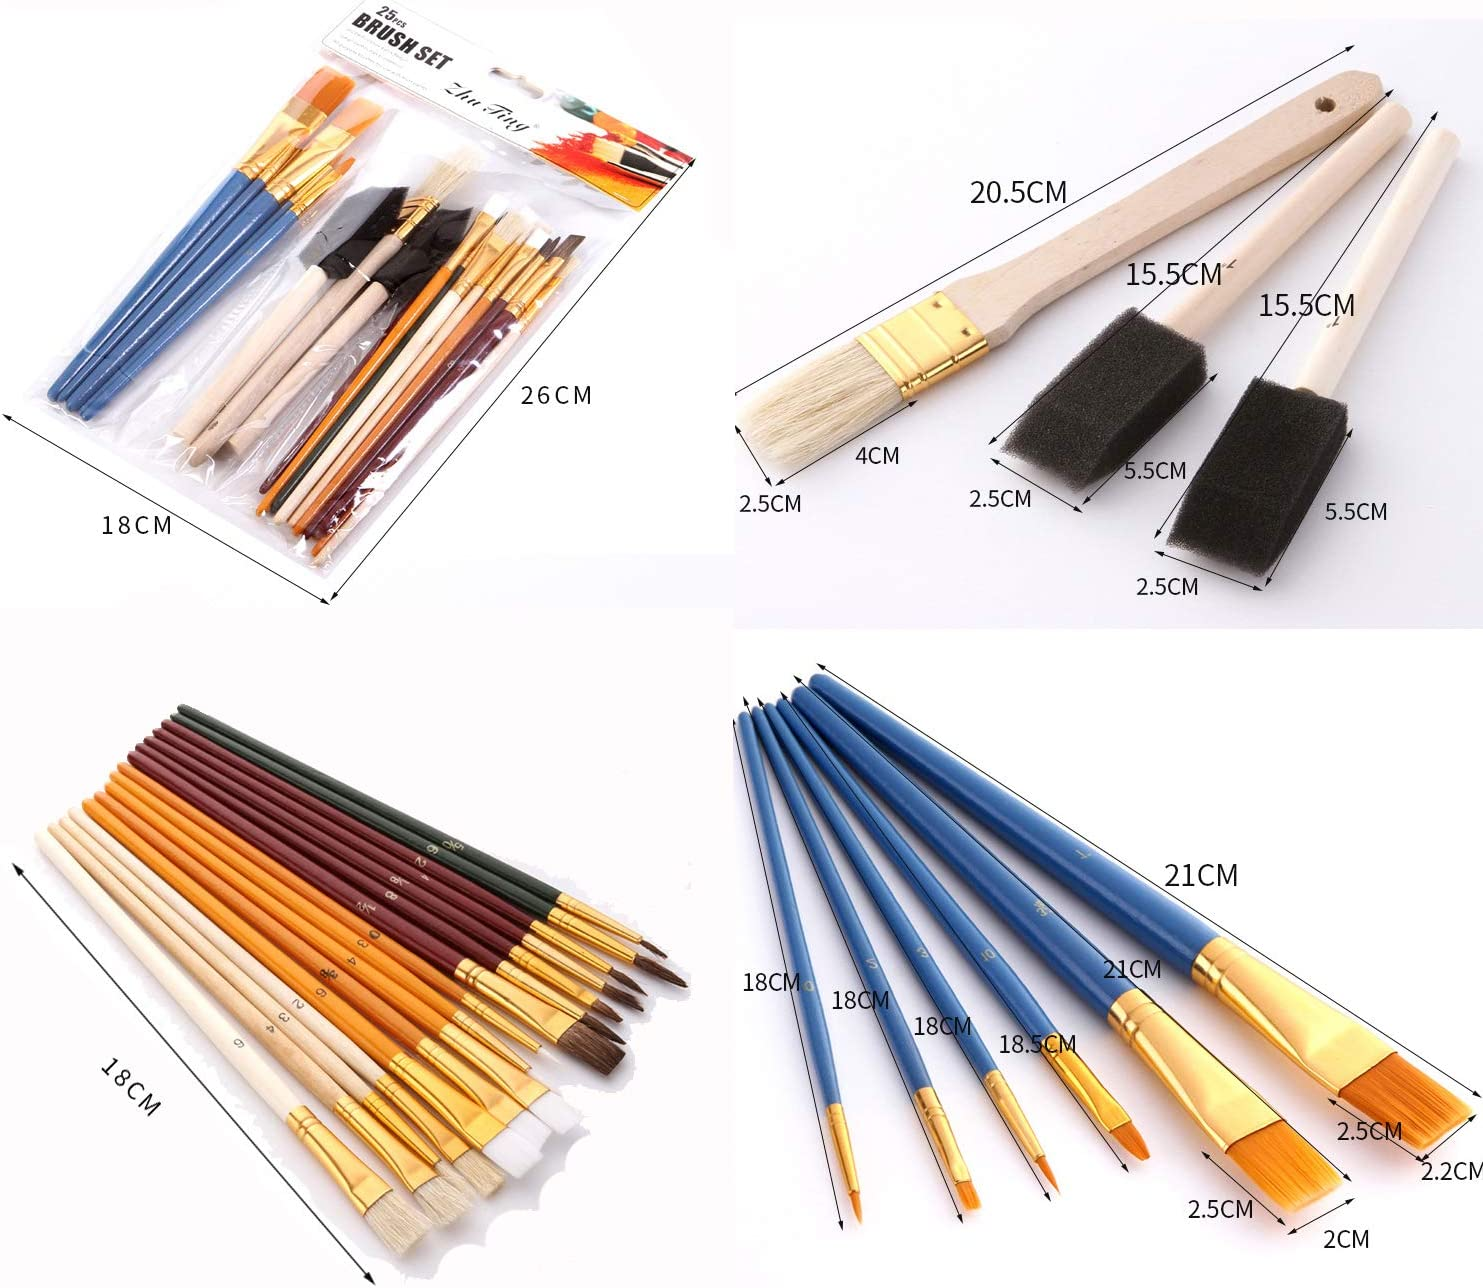 25pcs Multifunctional Oil Paint Brushes Set Colorful Drawing Brush Art Tools Kit Painting Supplies Brushes Great Present for Children Boys and Girls Paint Learning Ucradle Oil Paint Brushes Set